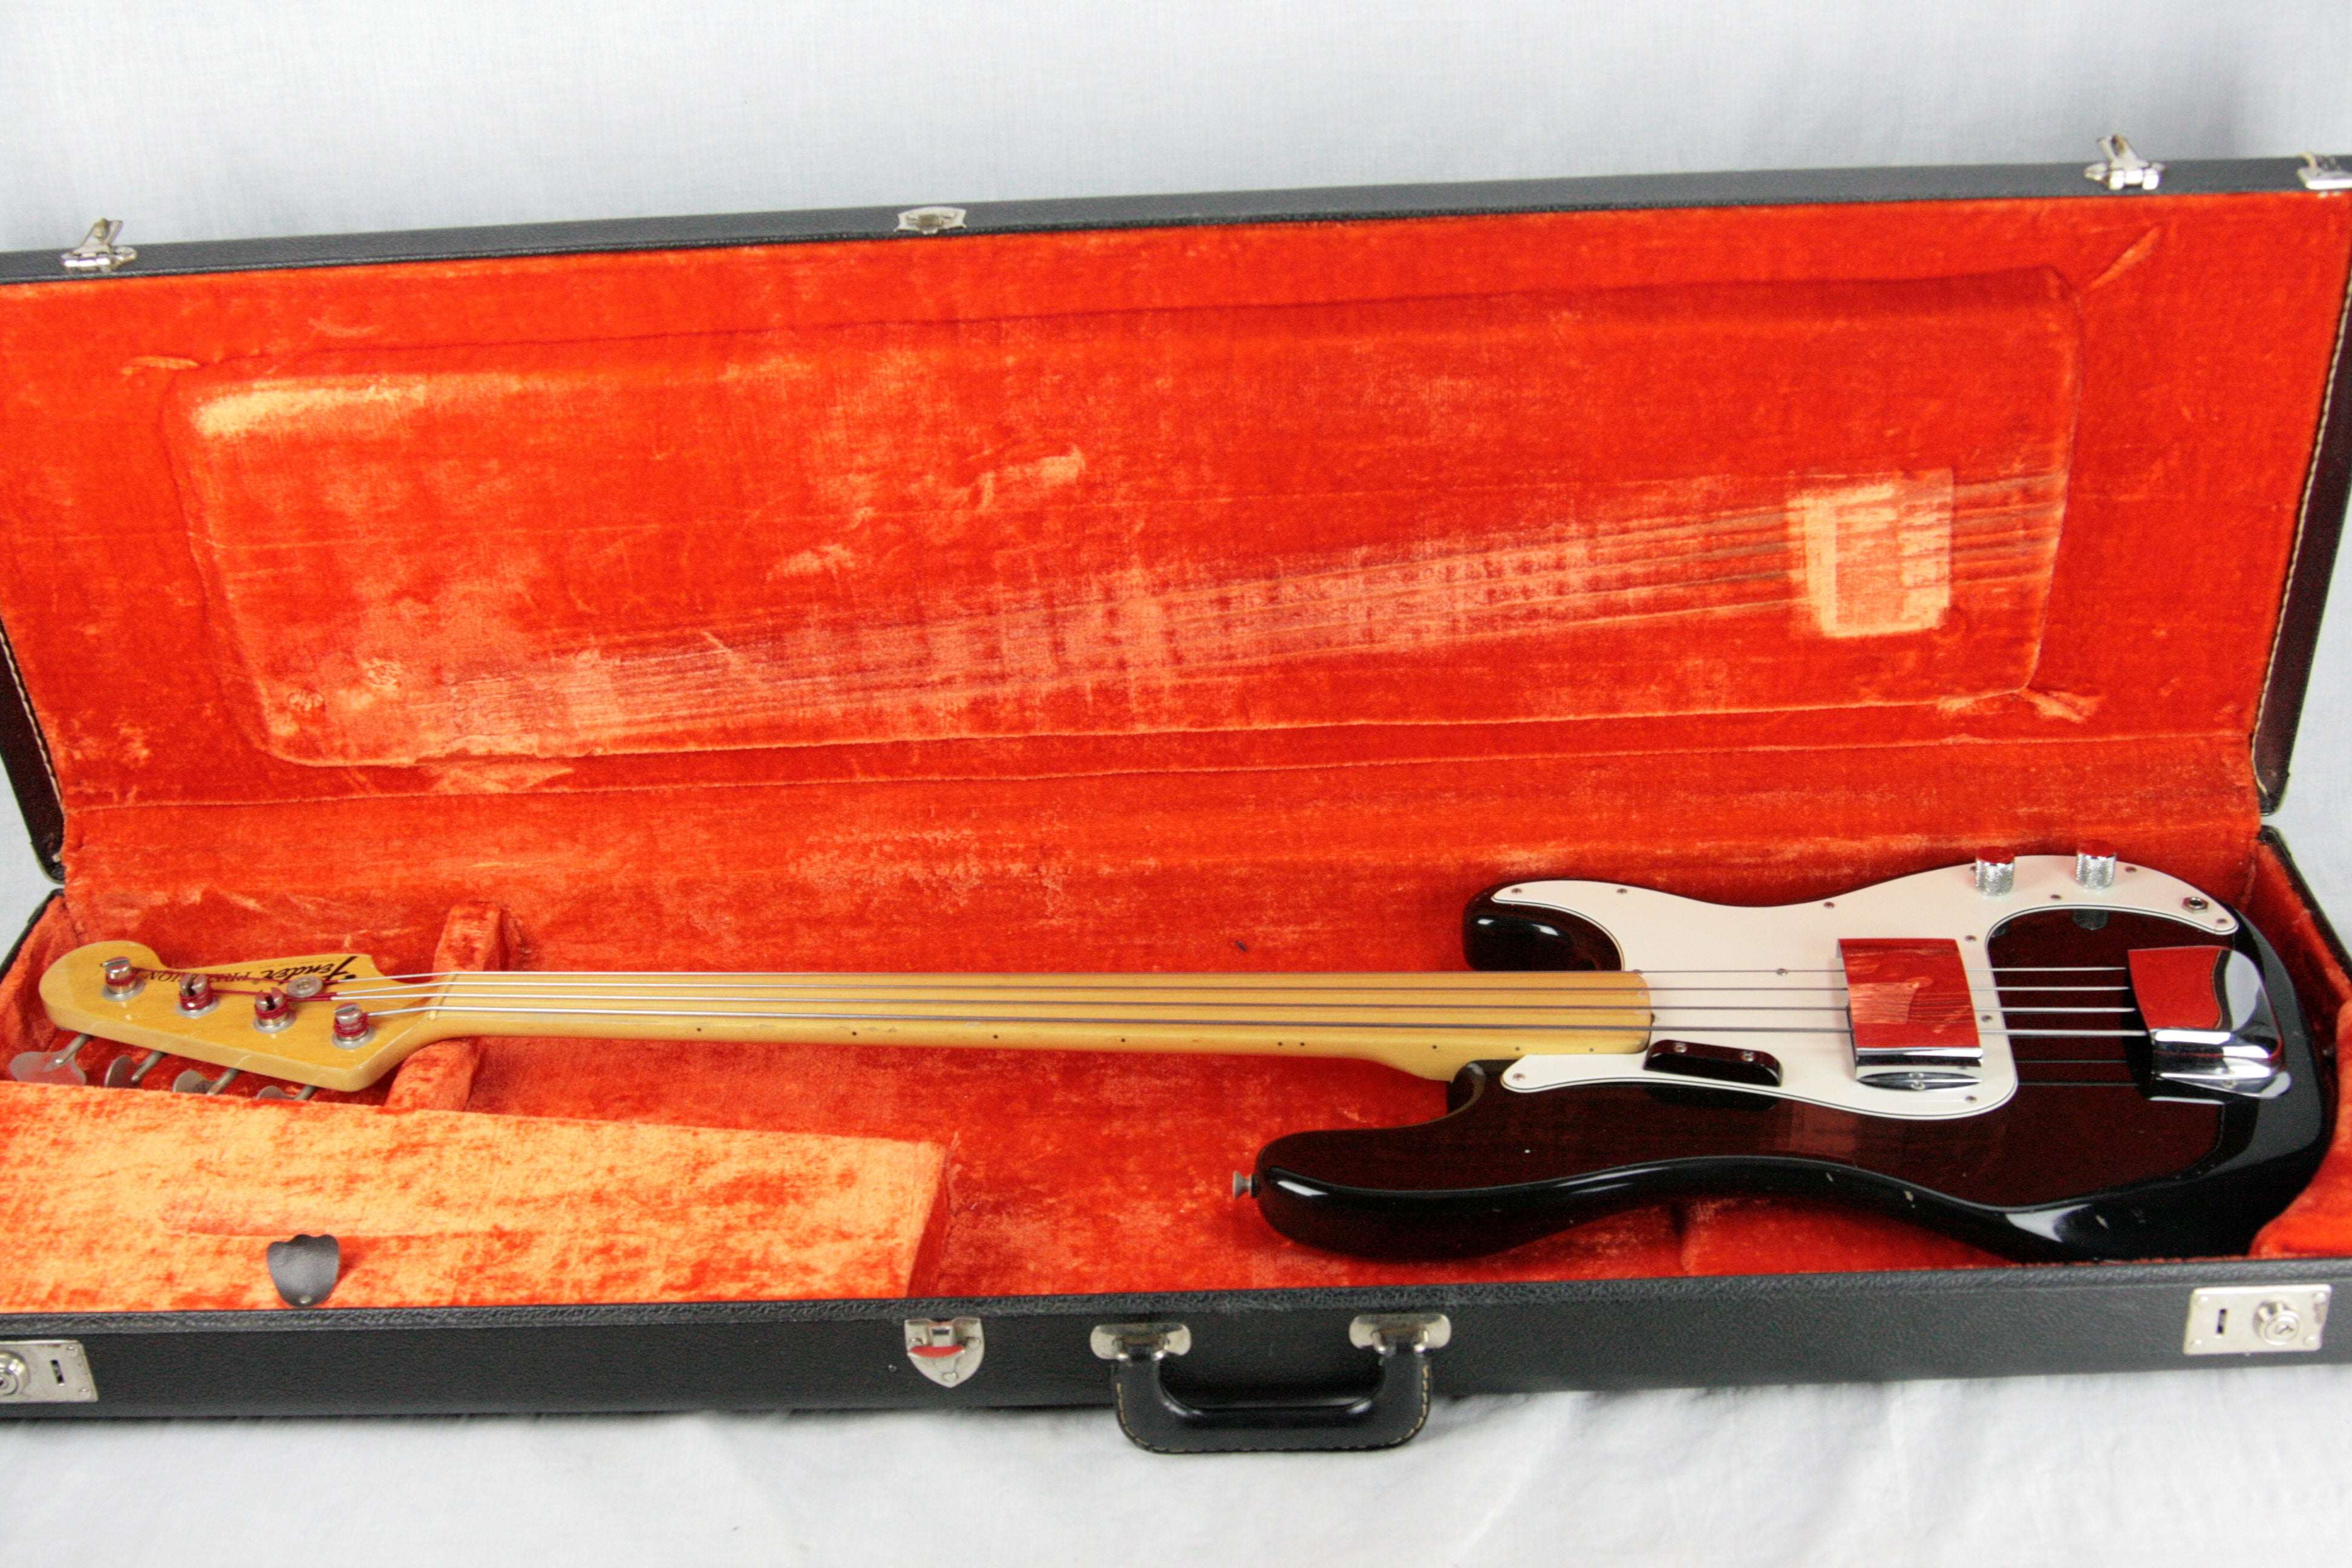 1974 Fender Precision Bass BLACK w/ Original Case! Fretless Maple Fretboard 1970's P jazz vintage